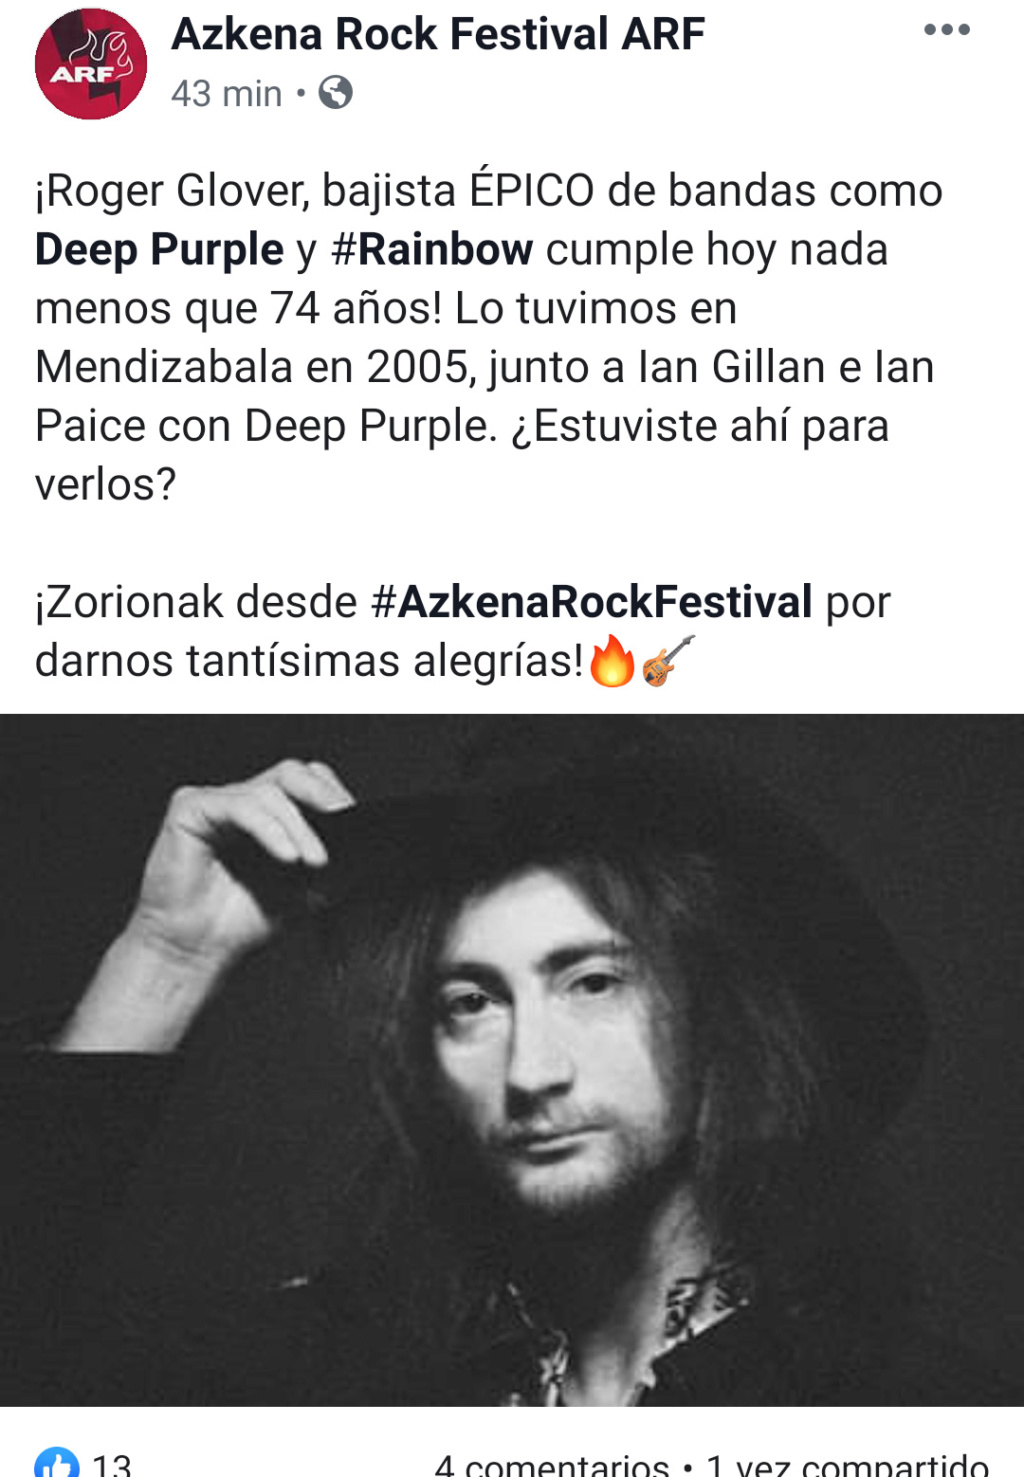 Azkena Rock Festival 2020. 19-20 Junio. Patti Smith - Página 9 Psx_2017